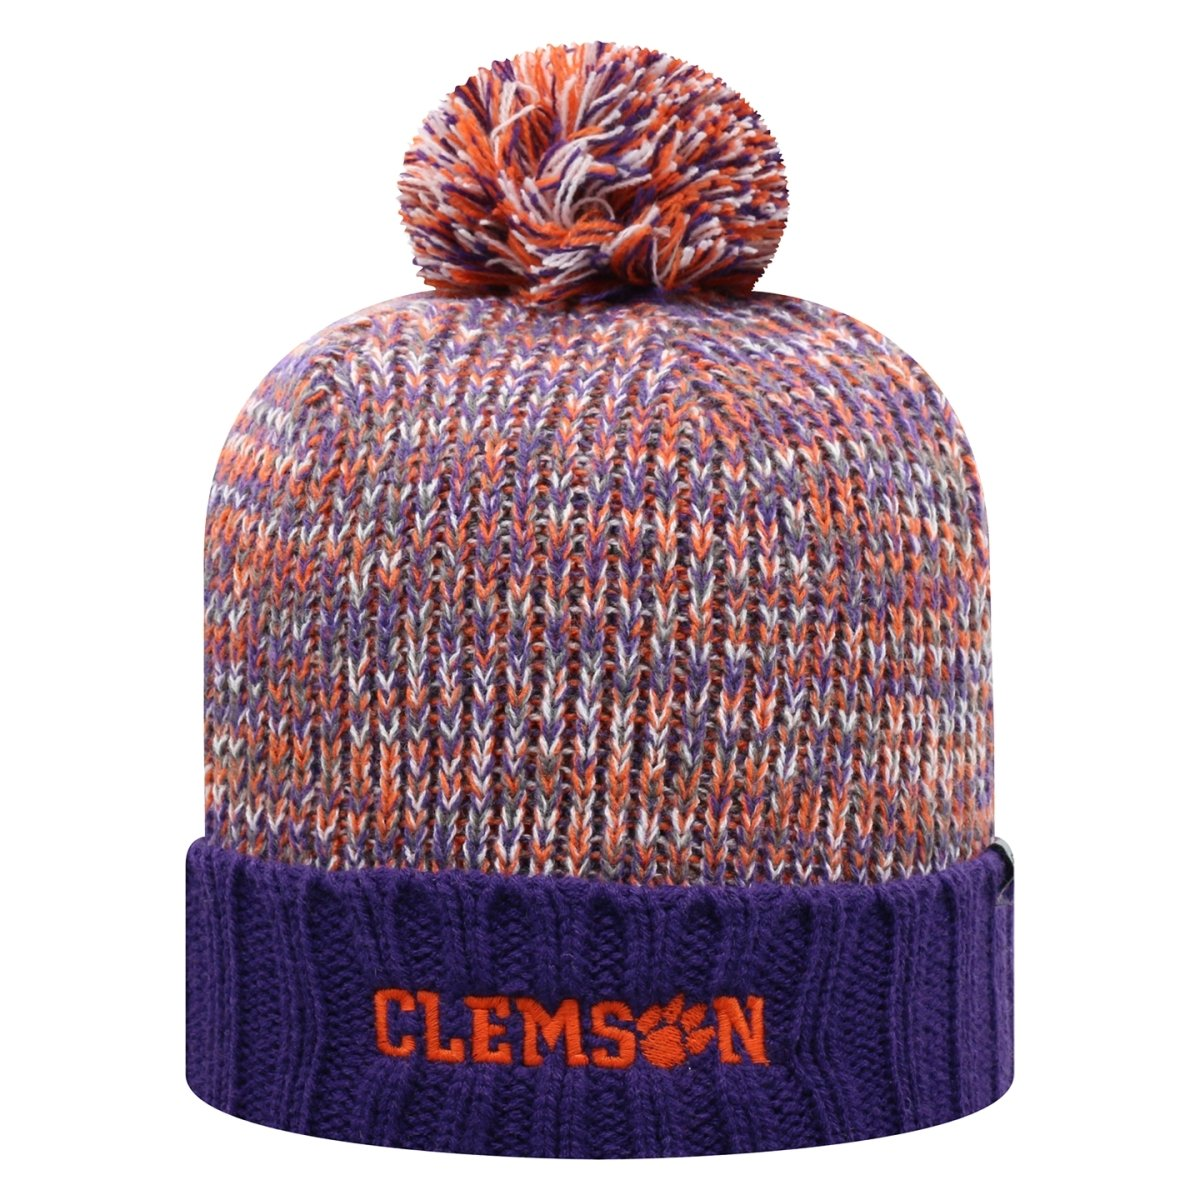 Top of the World Clemson Soar Multi-color Beanie With Pom Pom - Mr. Knickerbocker